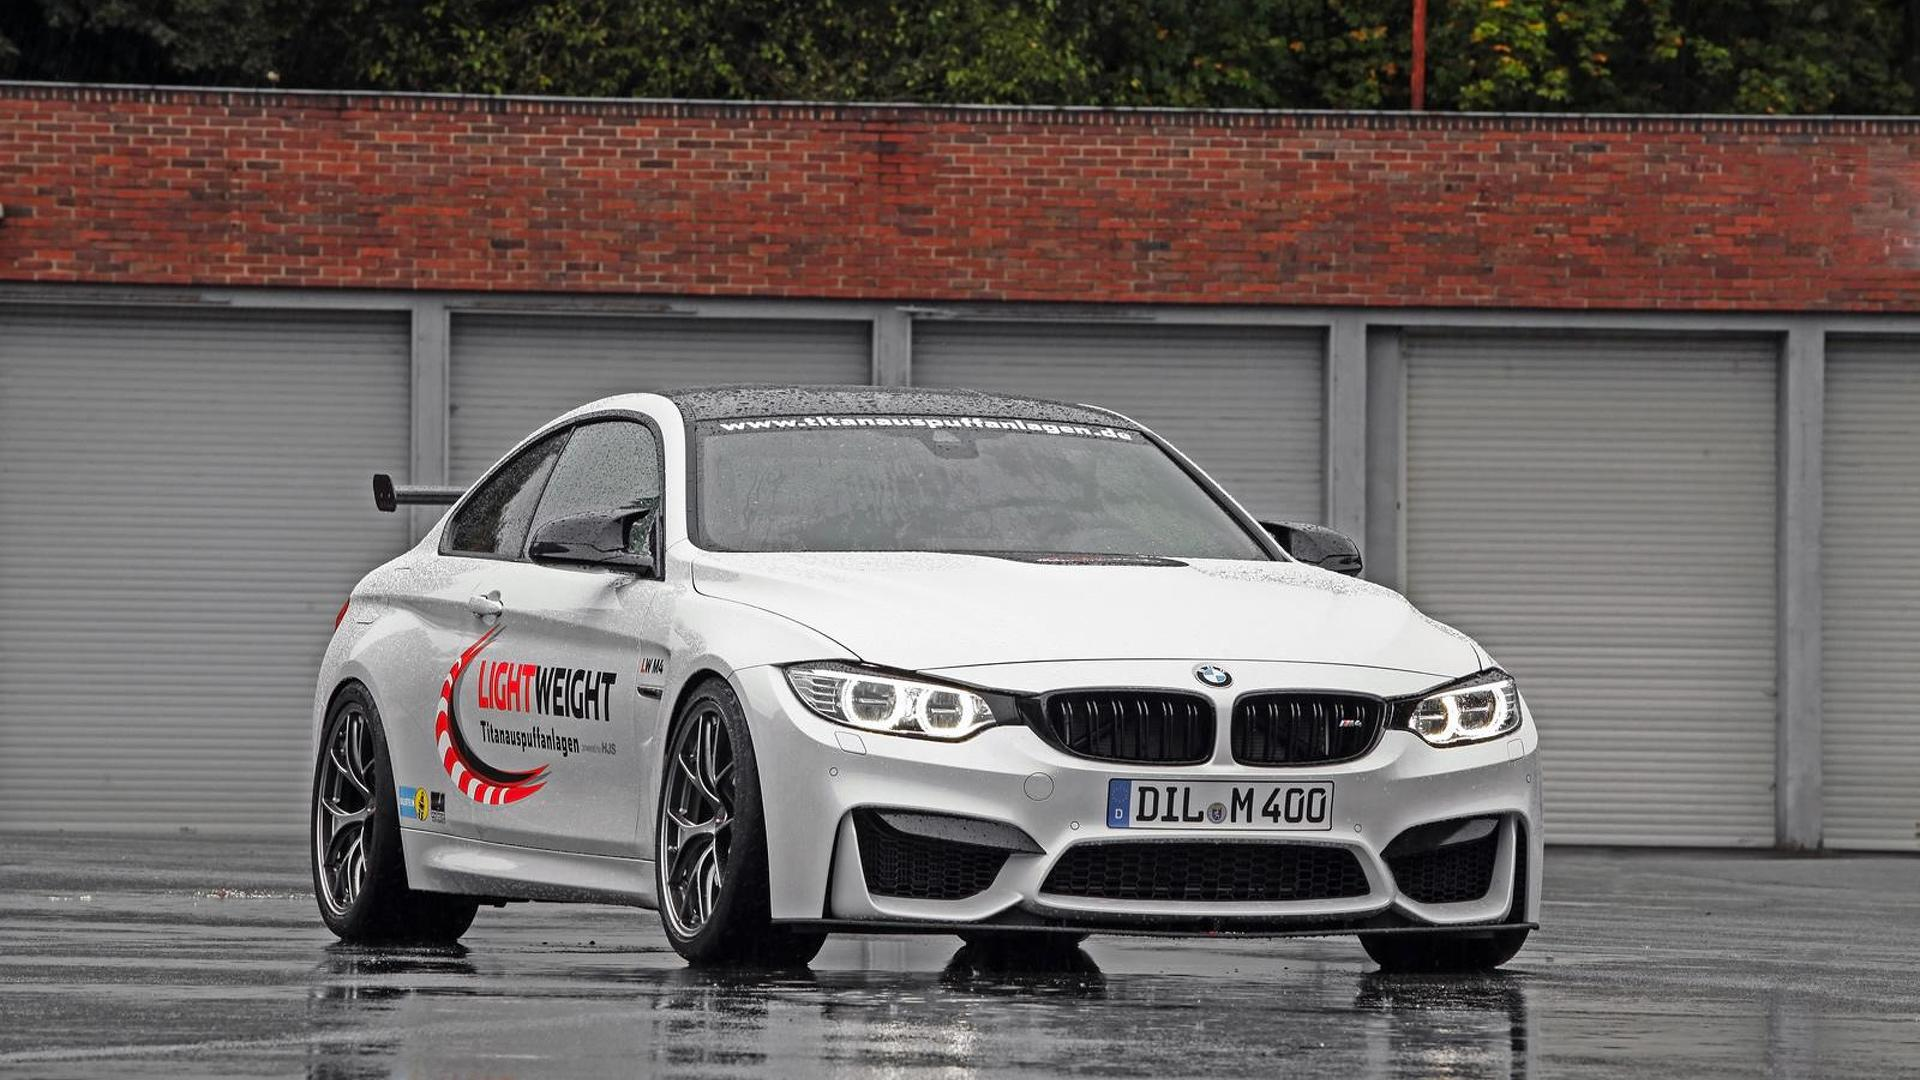 BMW M4 Coupe upgraded to 520 HP by Lightweight